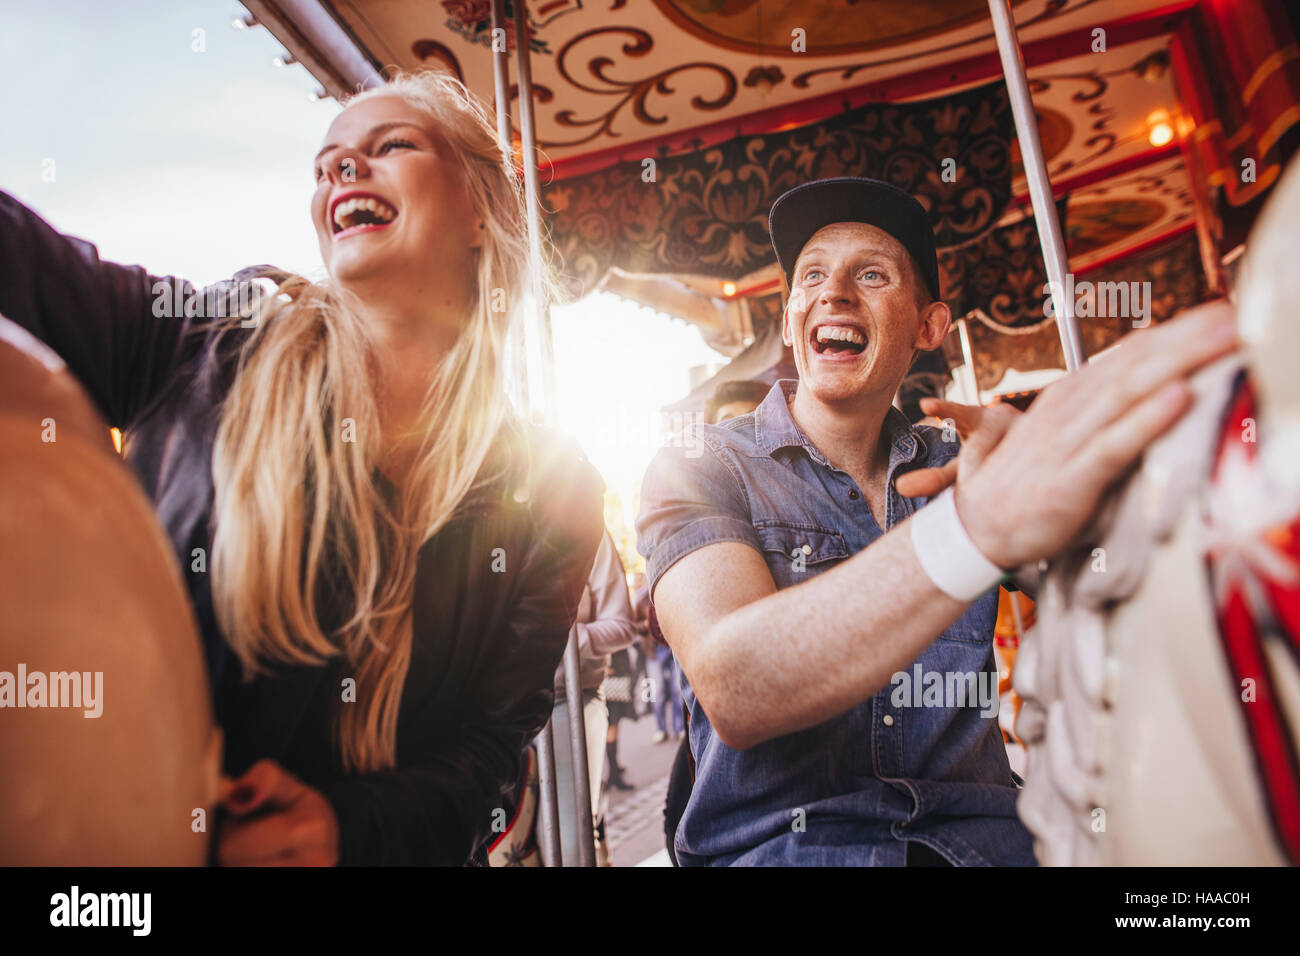 Young man and two women on carousel at fairground. Young couple riding horse carousel in amusement park and laughing. - Stock Image